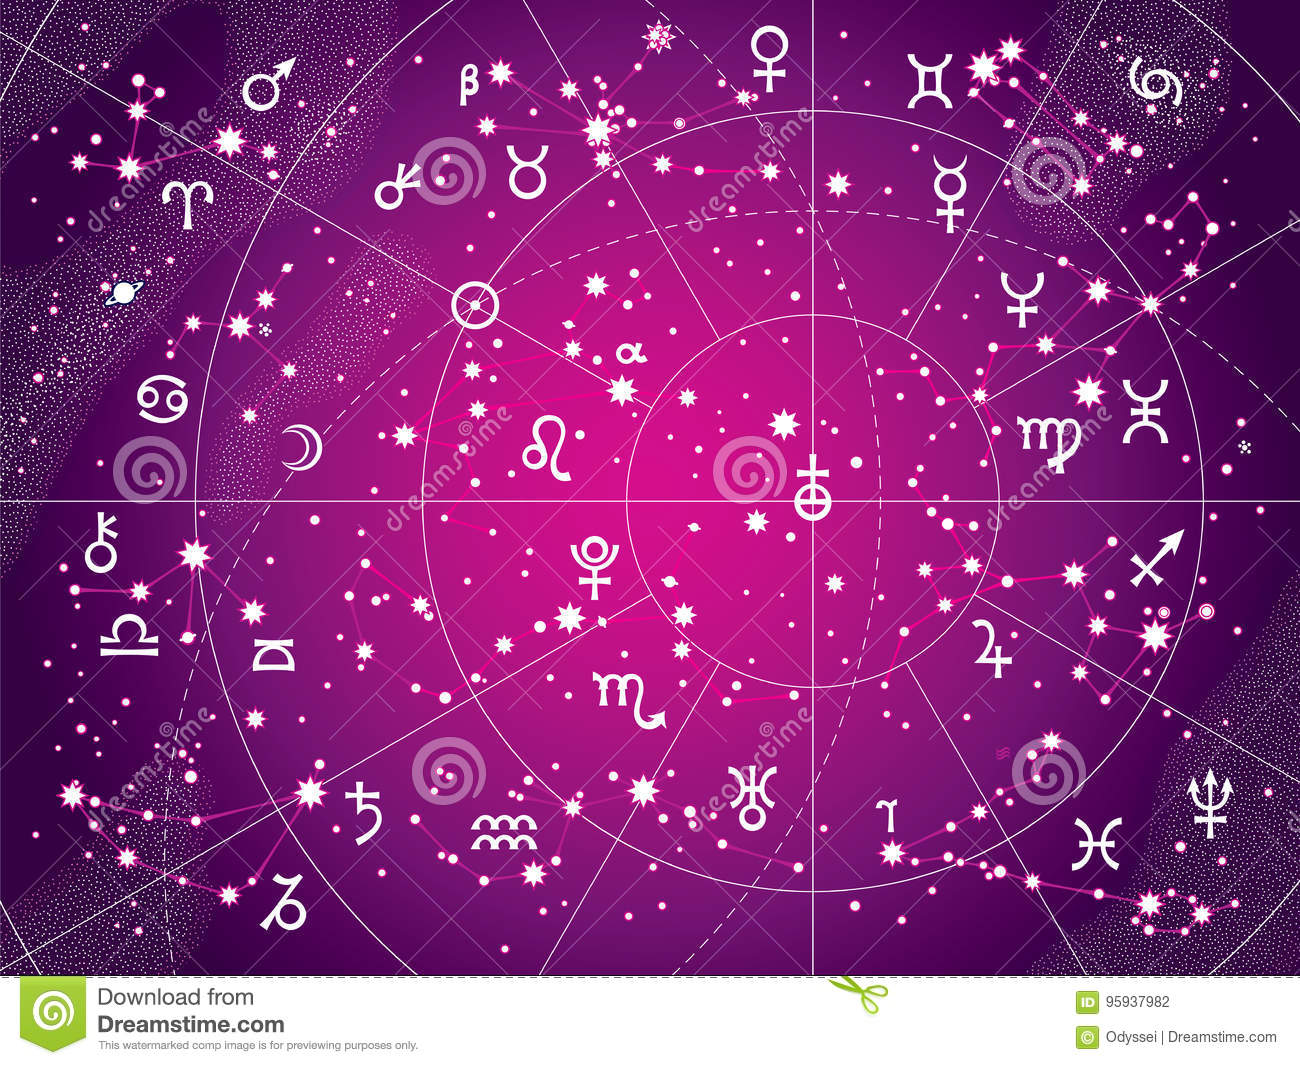 Xii Constellations Of Zodiac Antique Purple Version Stock Vector